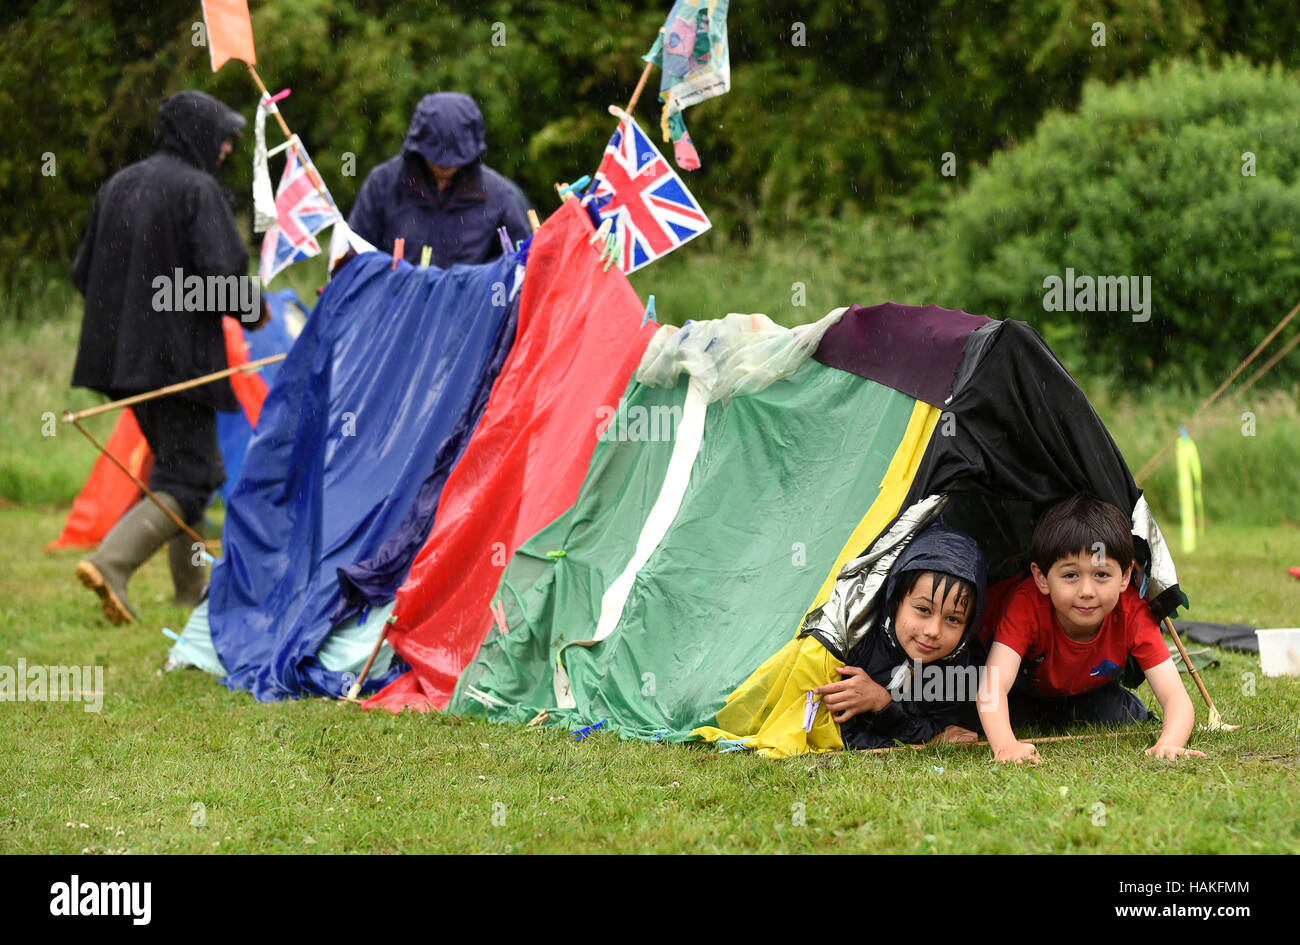 Children c&ing in home made tent at a wet rainy summer fete Uk  sc 1 st  Alamy & Children camping in home made tent at a wet rainy summer fete Uk ...